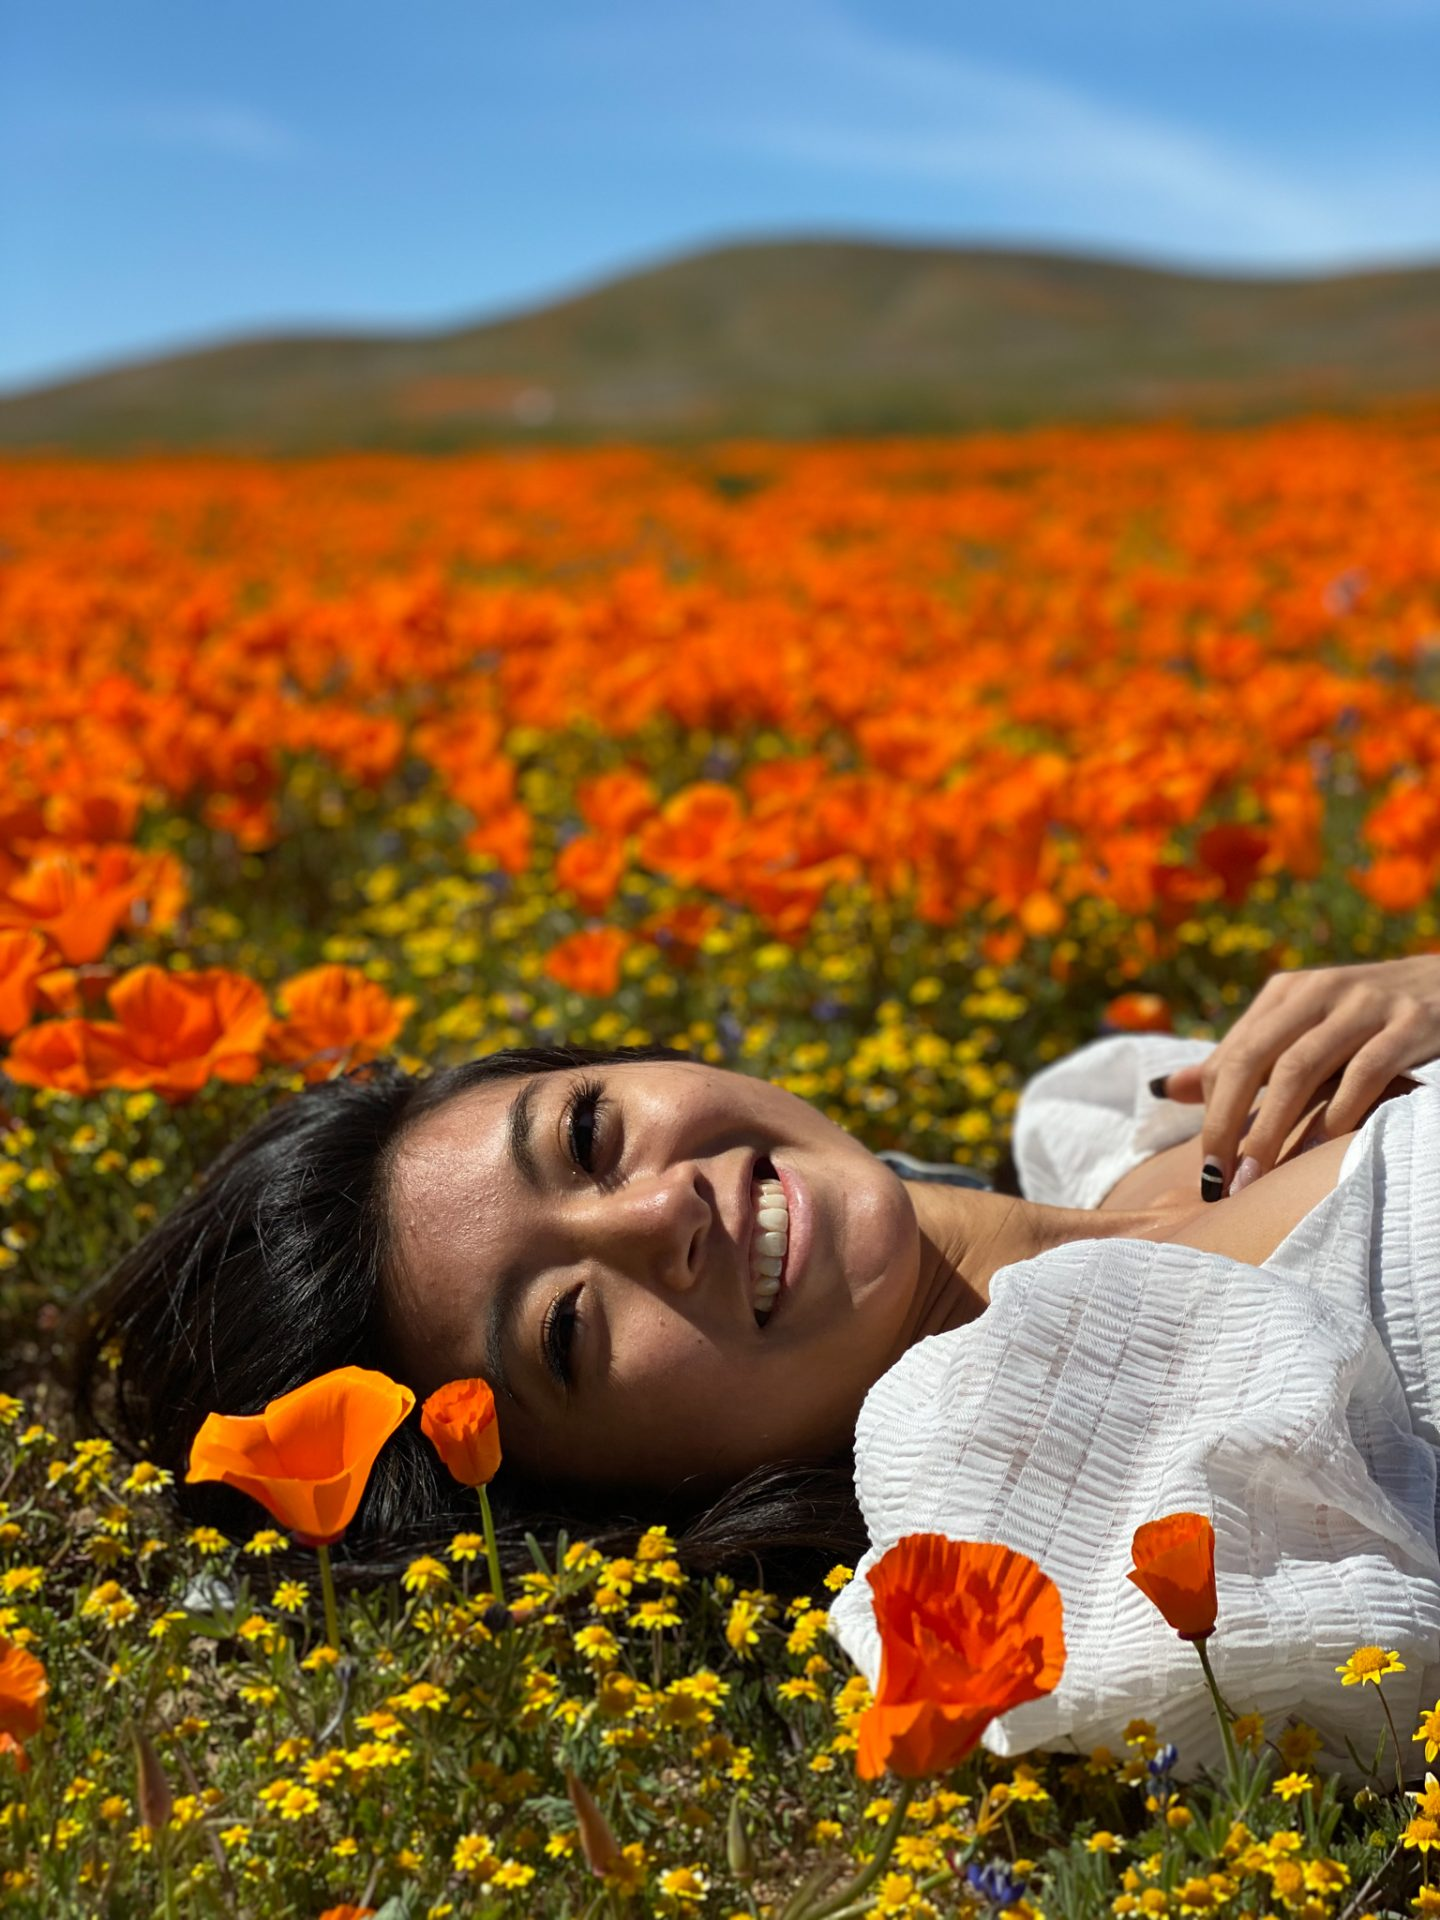 Curious about why you should visit the California Poppy Fields? Los Angeles Blogger My Teach Got Style is sharing why these gorgeous California poppy fields are a must see!